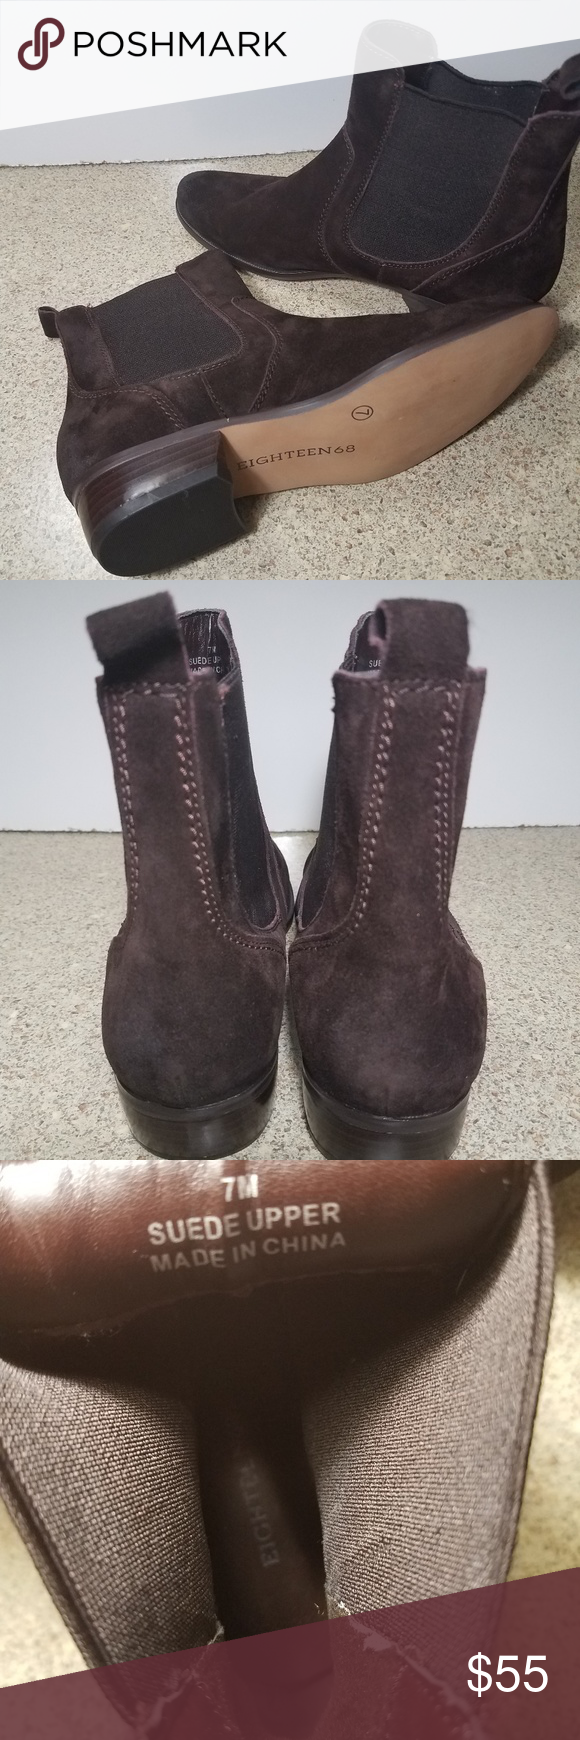 ccbbd93baf46a Womens eighteen68 ankle boots sz. 7 brown leather Beautiful brown leather ankle  boots size 7 never worn brand new ready for fall clean, with elastic sides  ...